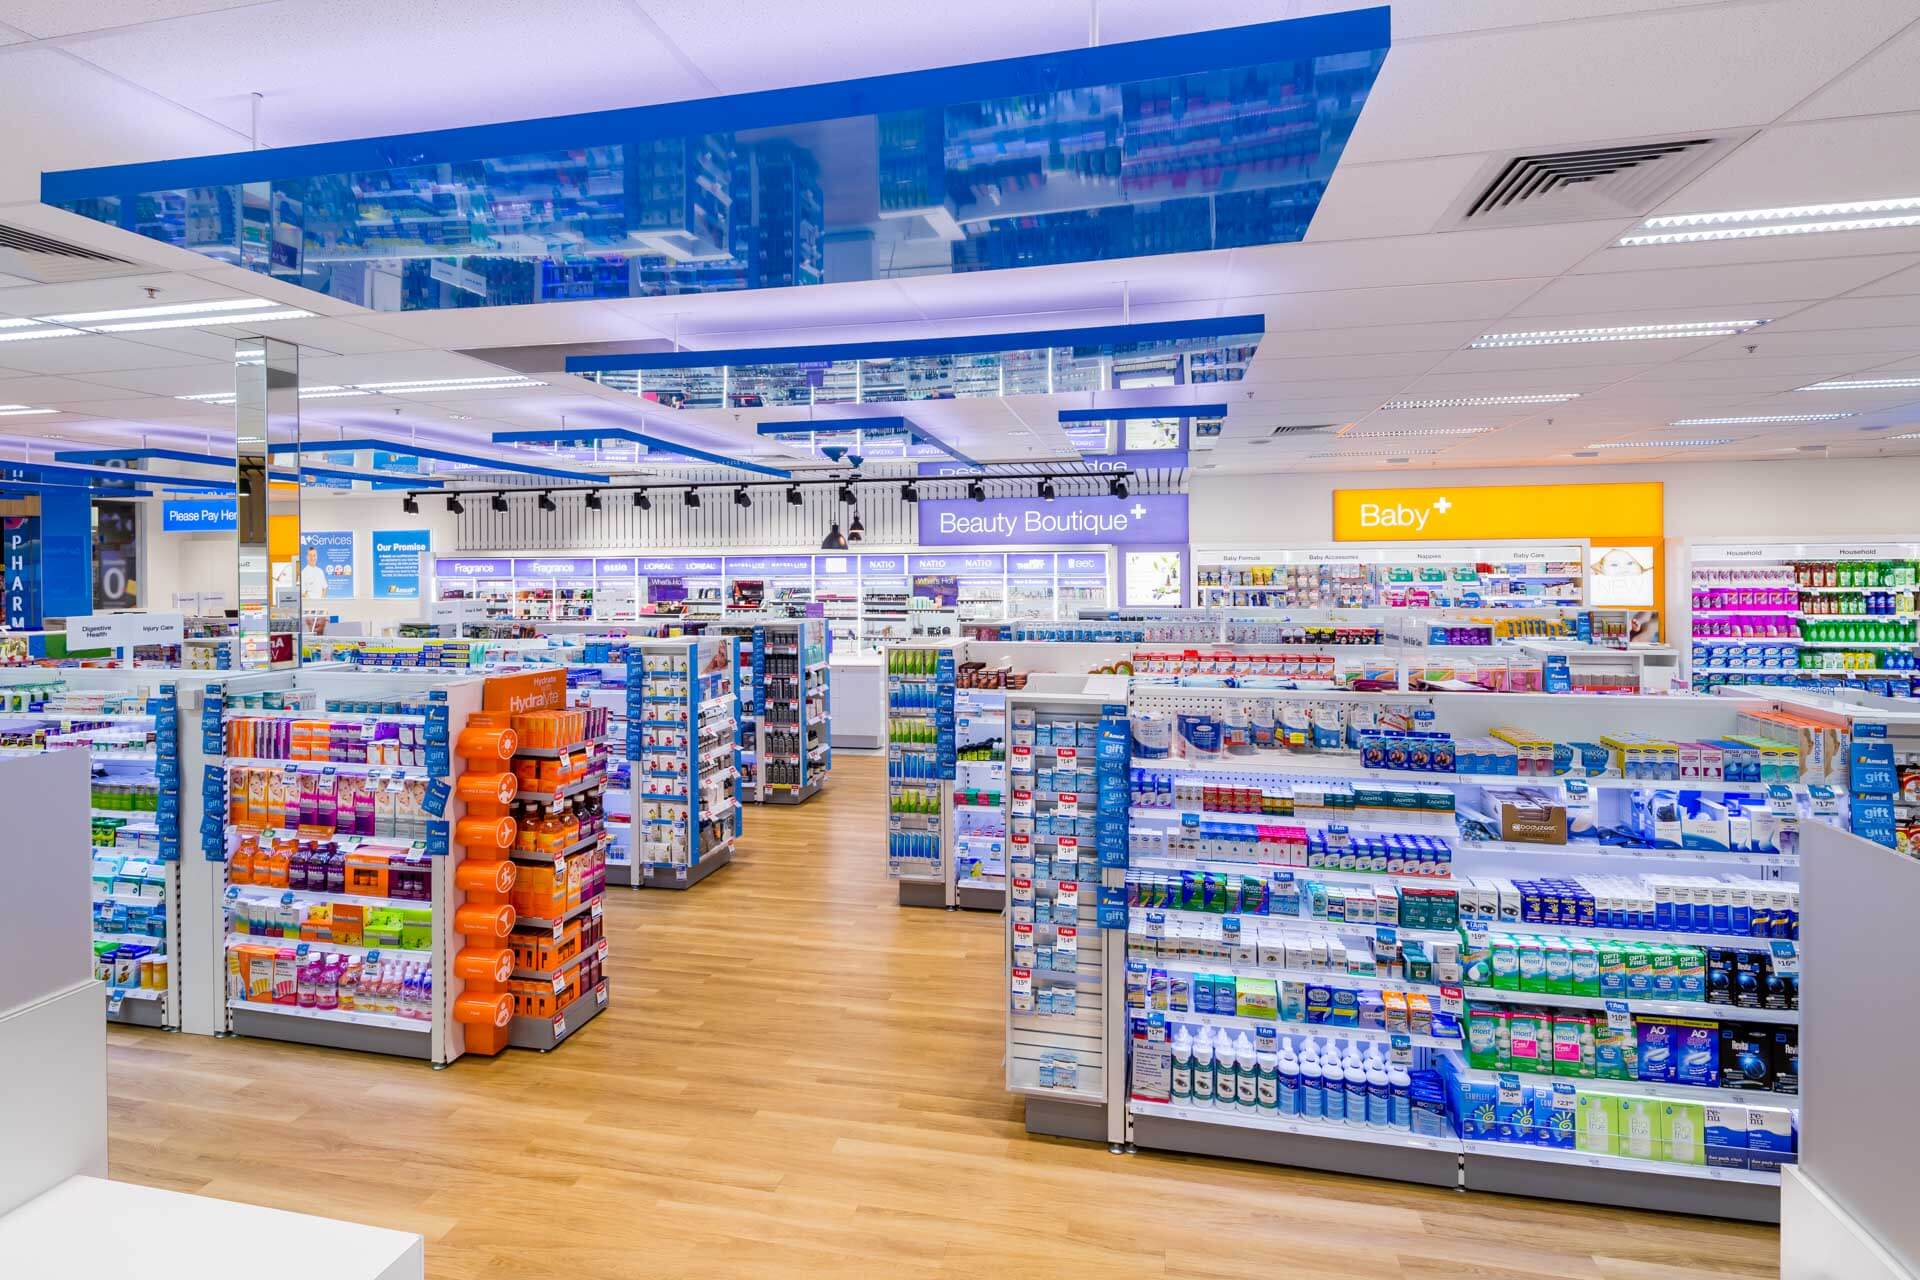 amcal+ pharmacy internal photograph of beauty Boutique and baby product area with overall store by sigma pharmaceuticals in stud park shopping centre